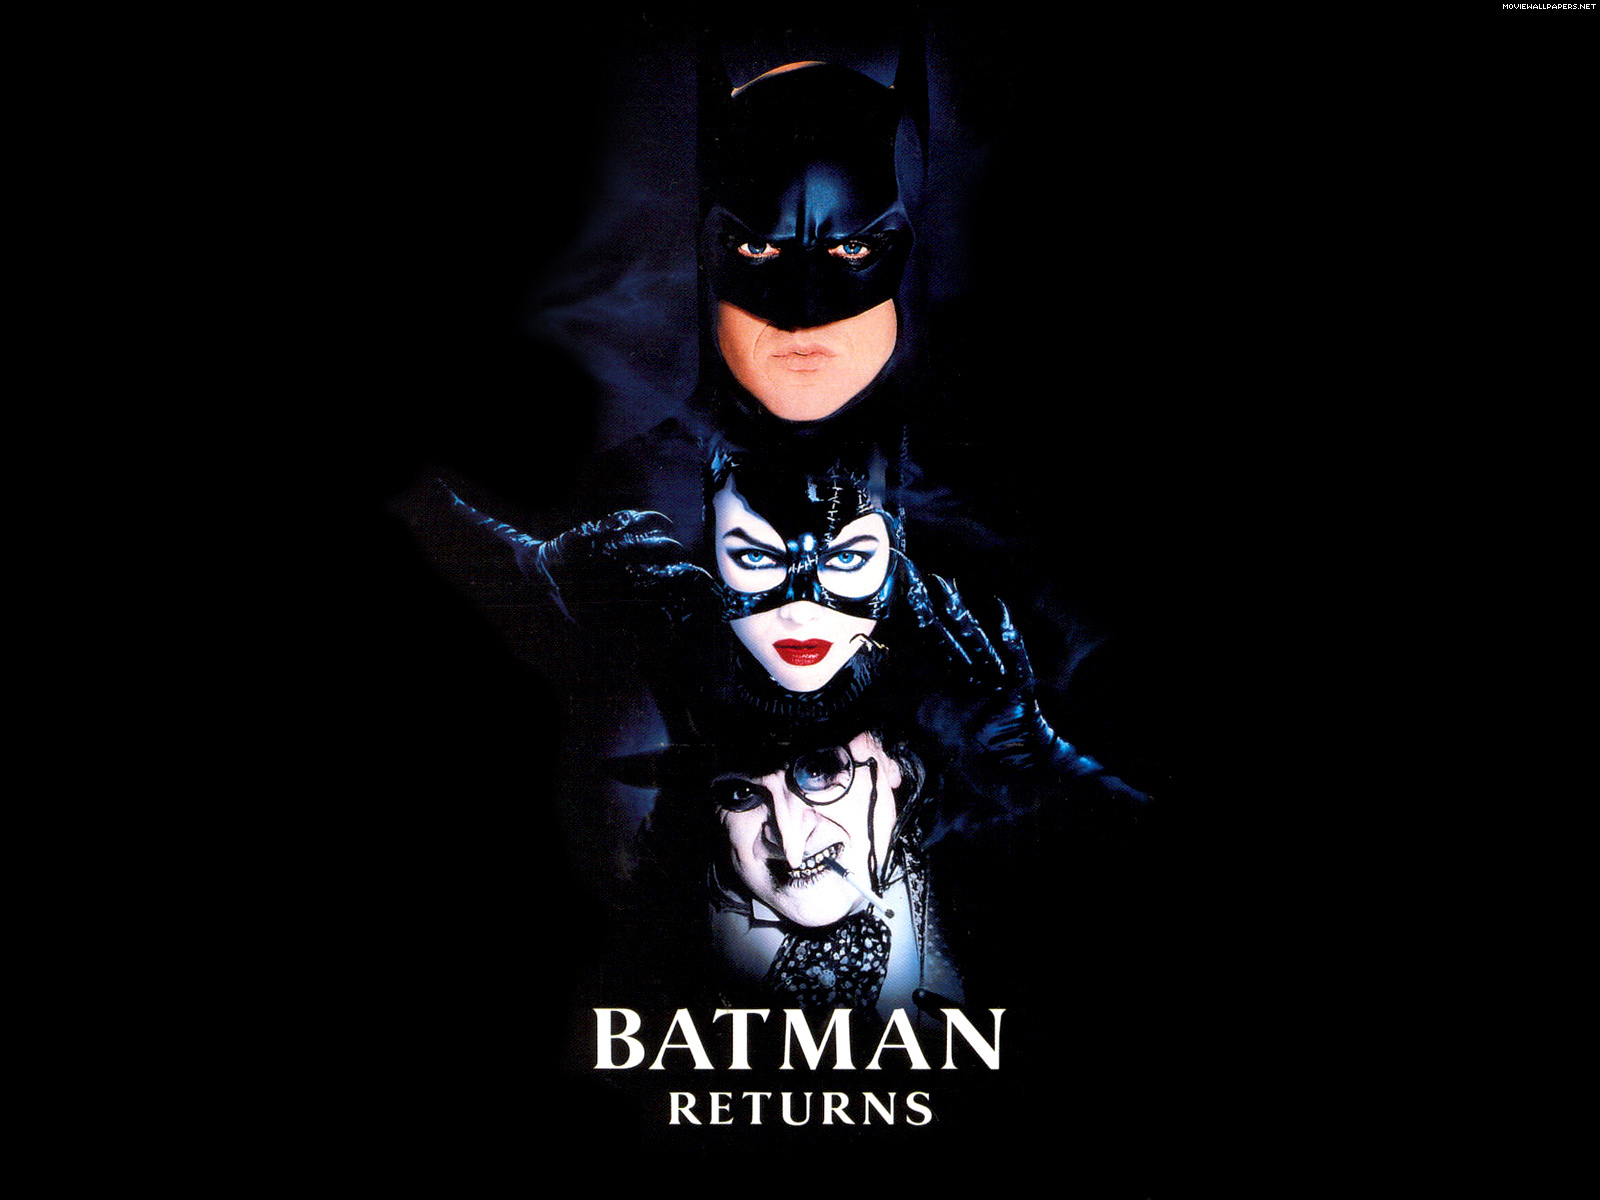 Batman Returns Character Wallpaper   Batman Returns Wallpaper 1600x1200